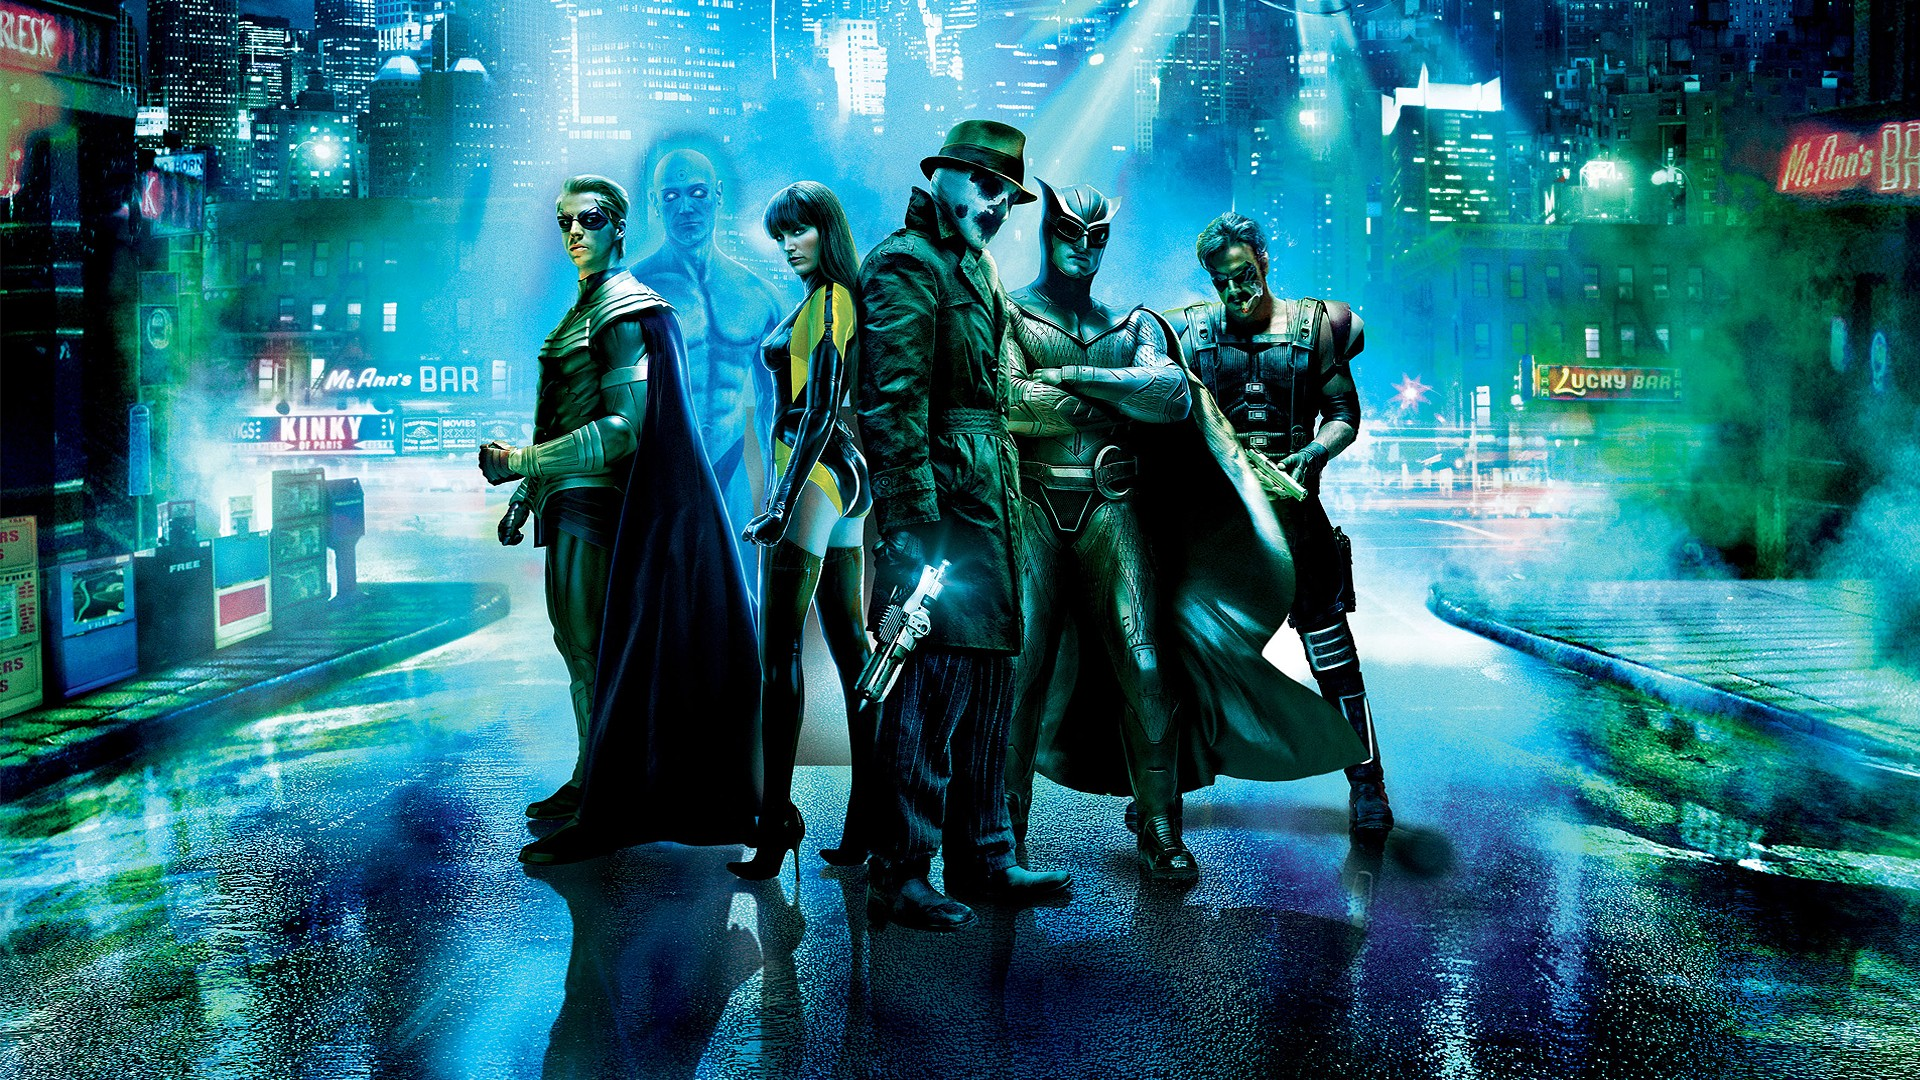 Promotional artwork - Watchmen line-up (l to r) Ozymandias, Dr Manhattan, Silk Spectre, Rorschach, Nite Owl and The Comedian in Watchmen (2009)